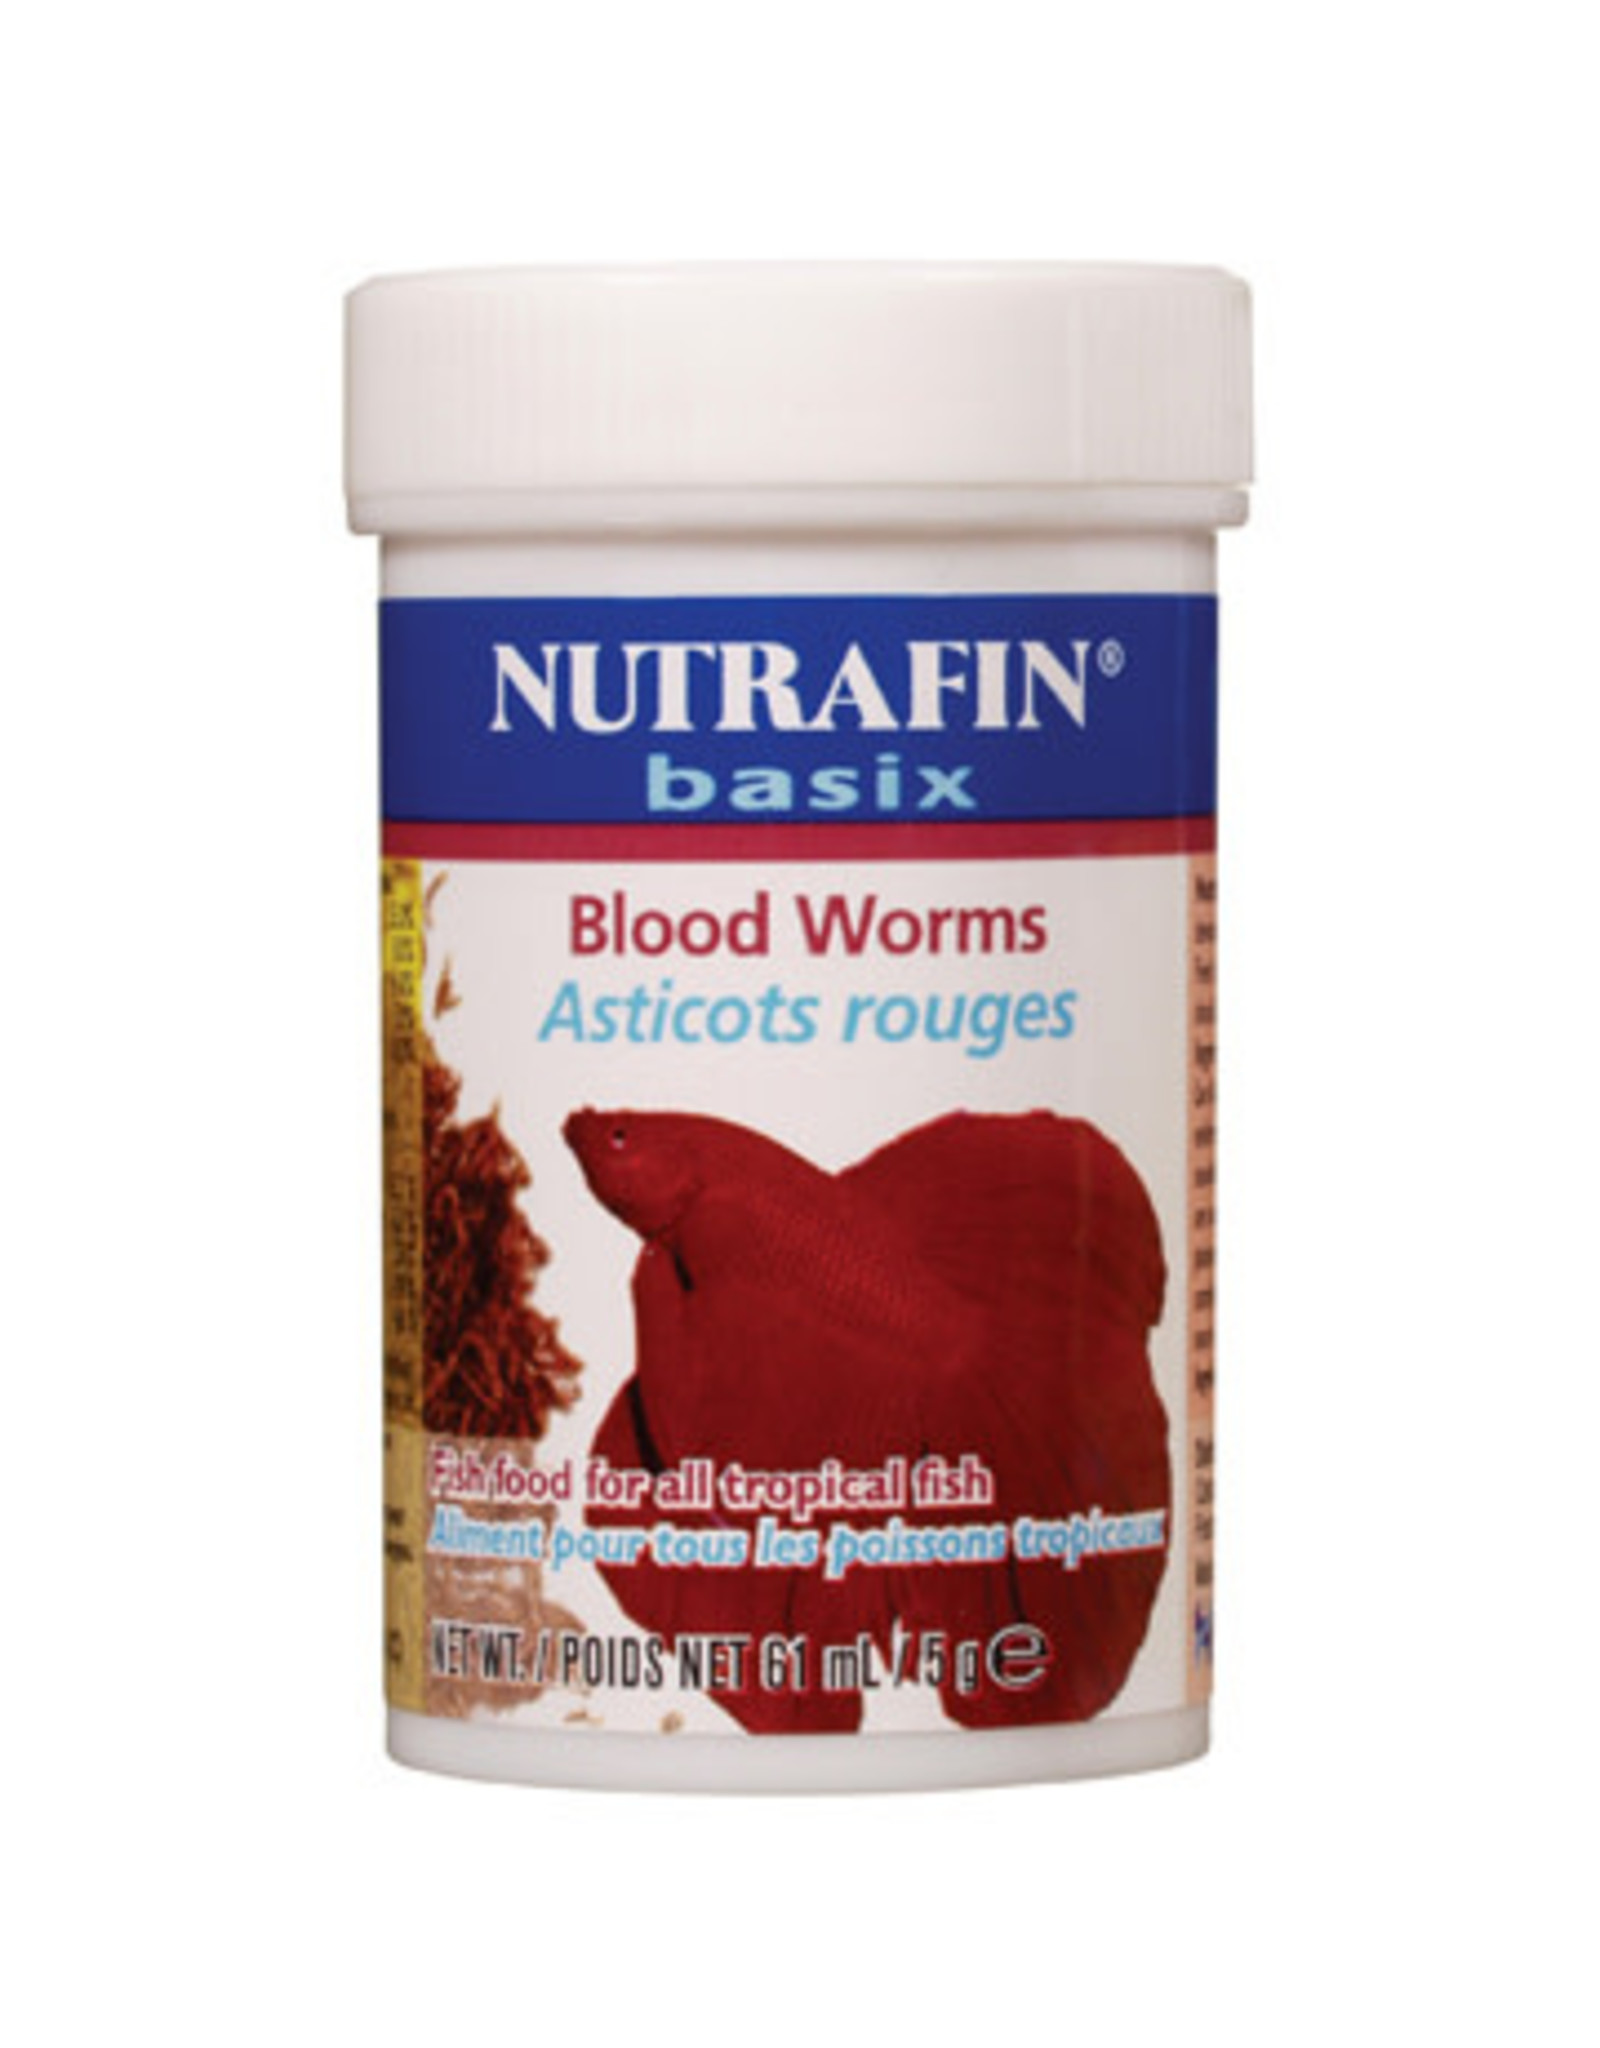 Nutrafin Nutrafin Basix Freeze D. Blood Worm, 5g (0.1oz)